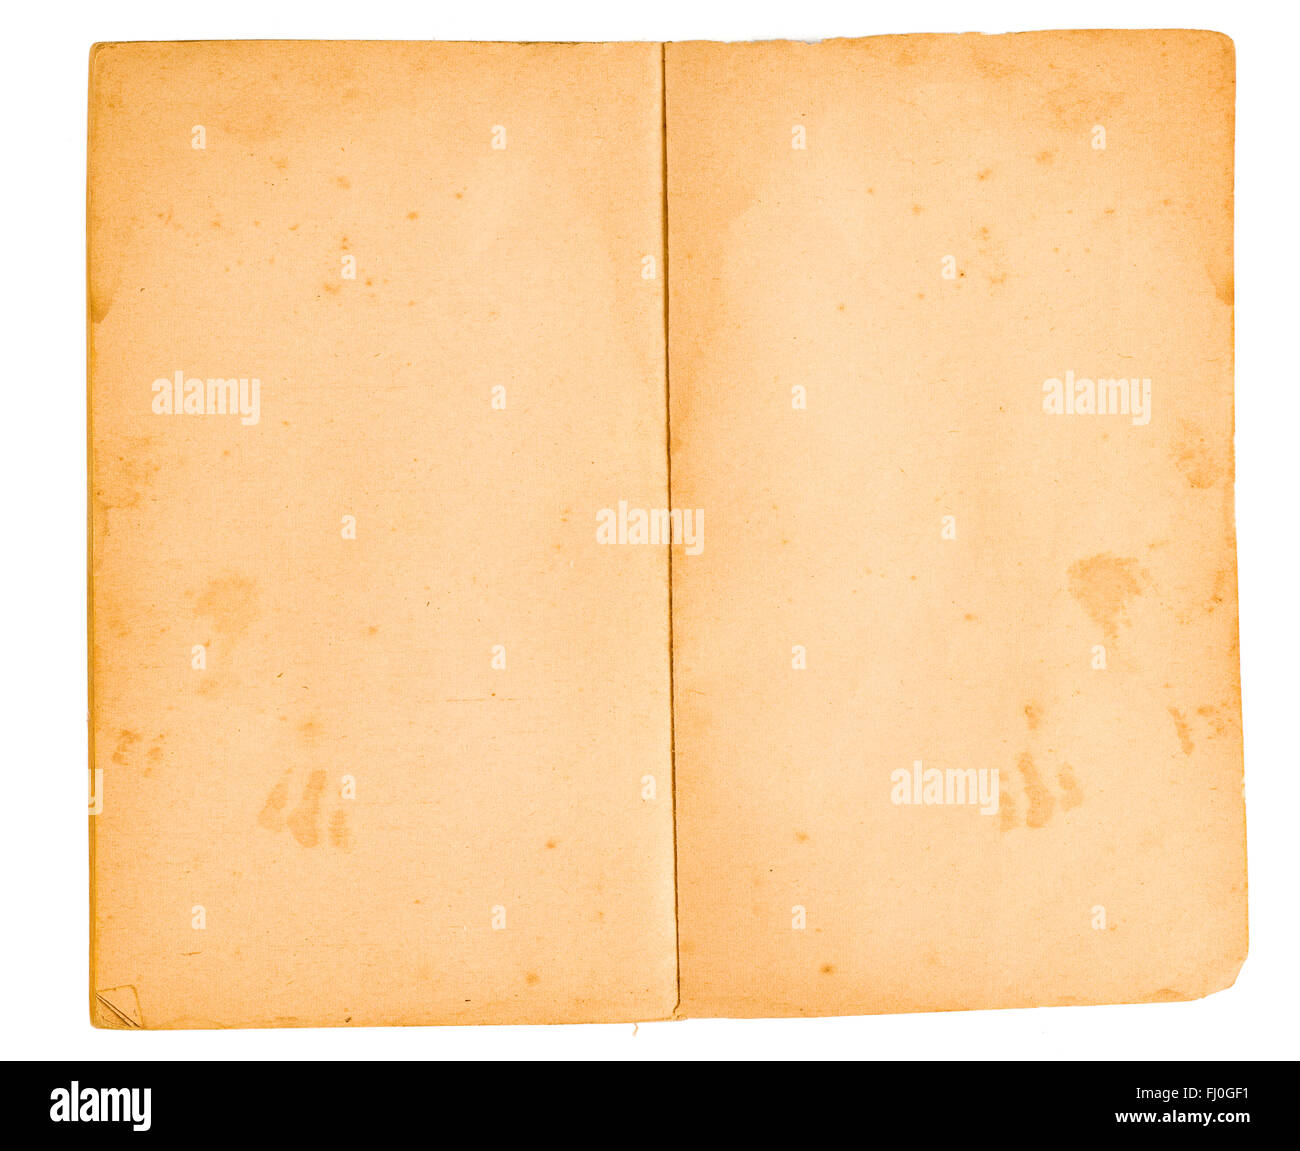 Blank Pages From Faded Book (XXL) - Stock Image